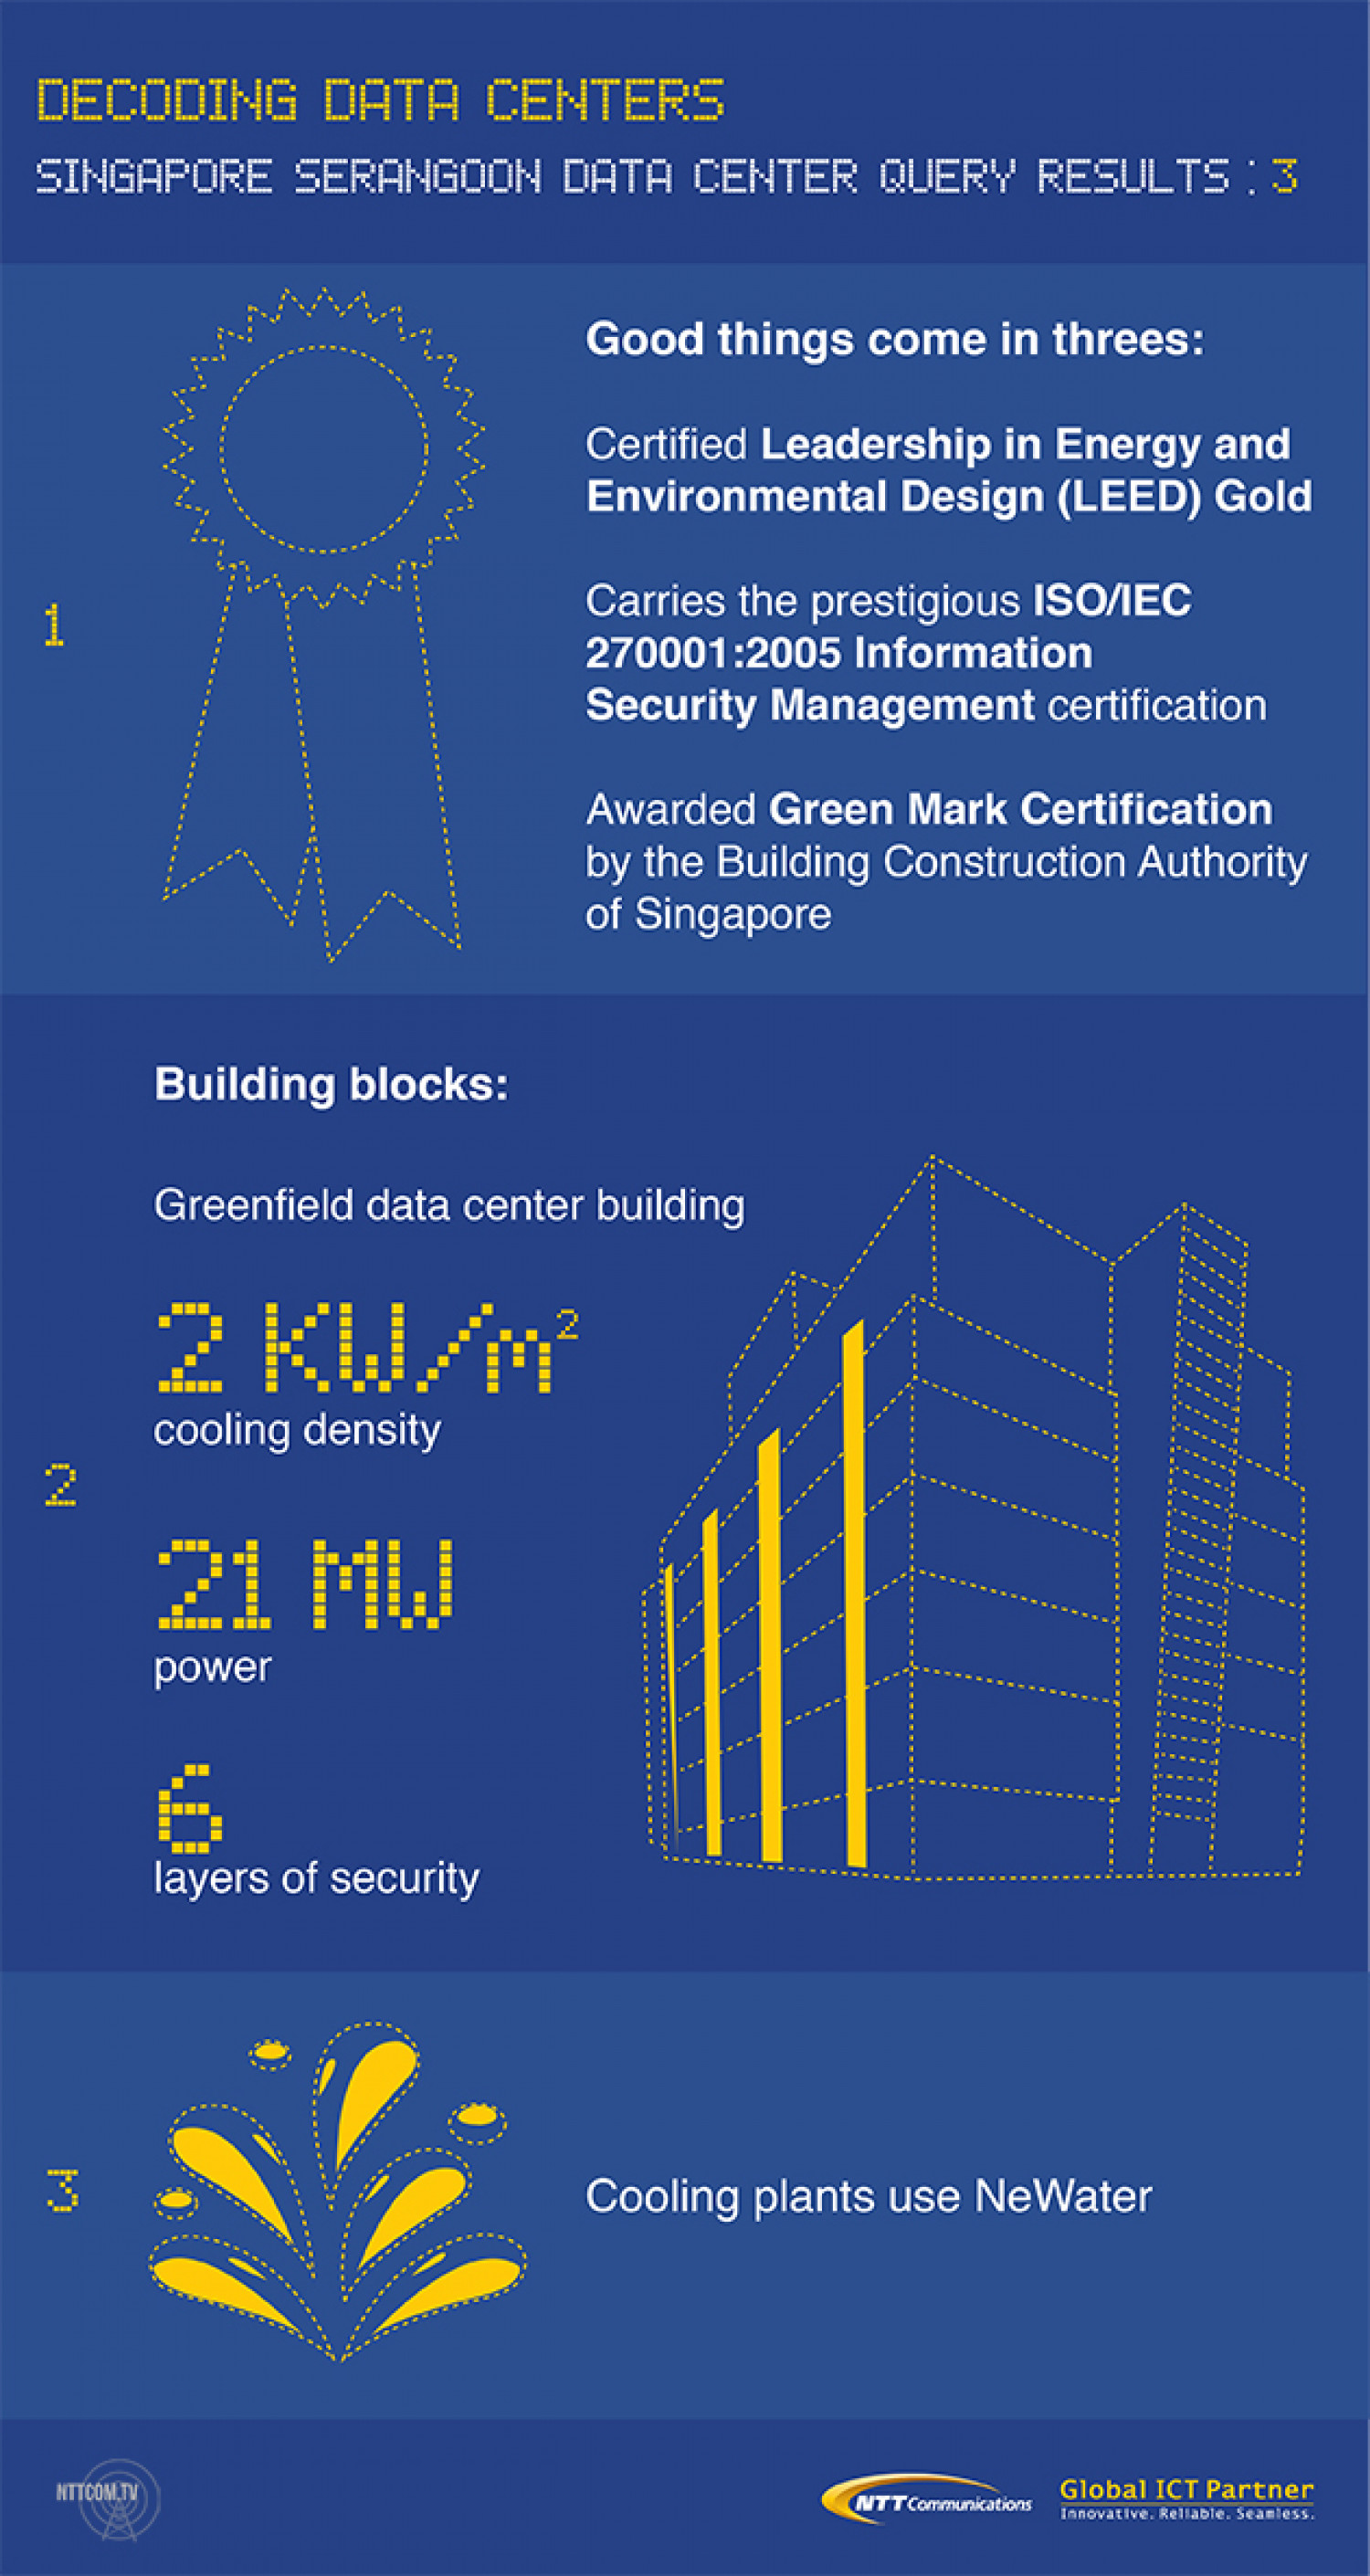 Singapore Serangoon Data Center: 3 Fast Facts Infographic